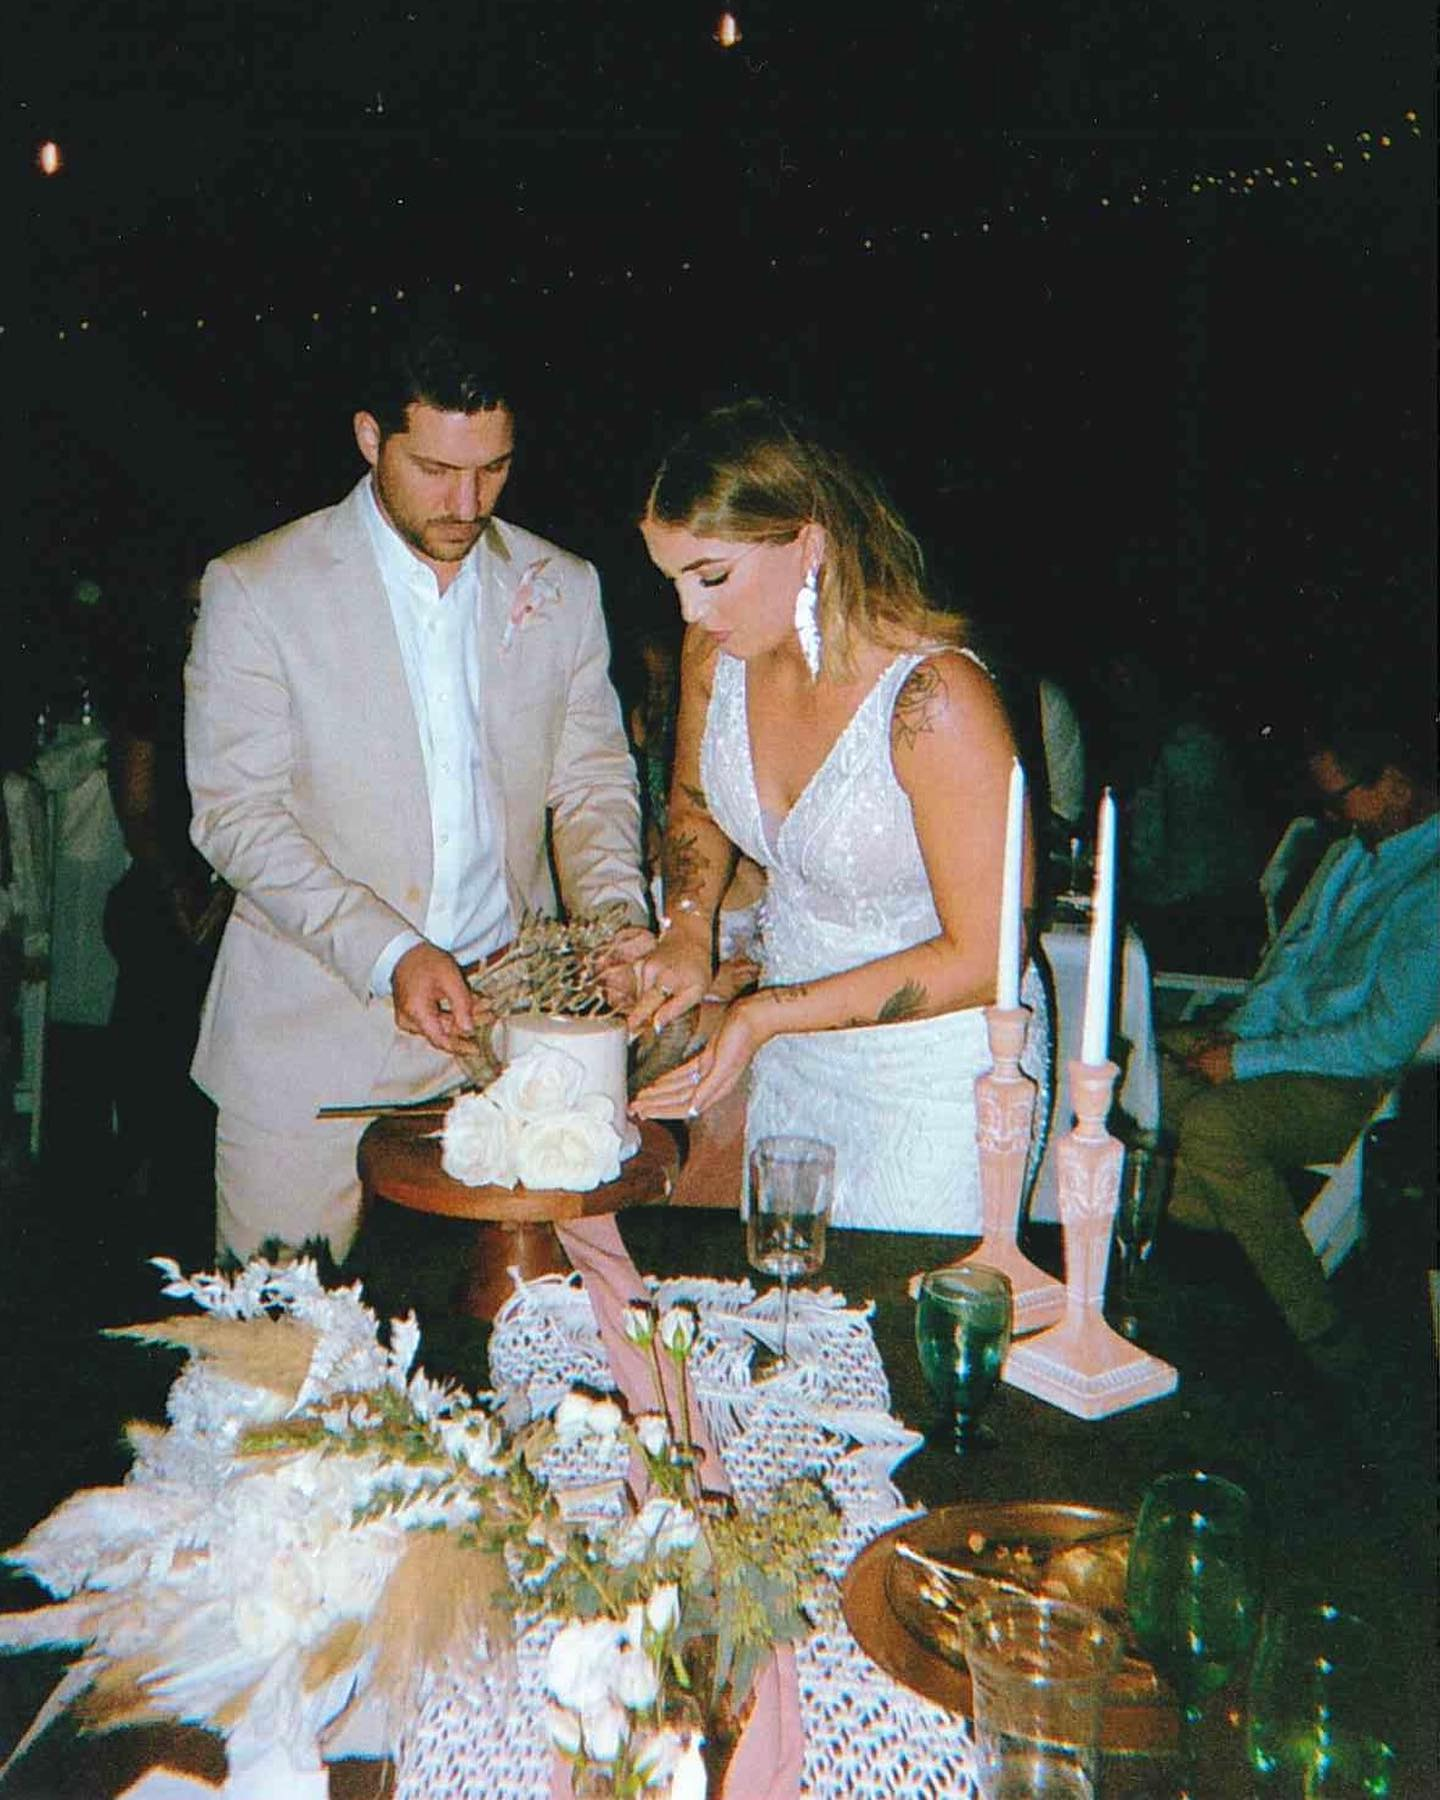 Bride and Groom Cutting a Gluten-Free DIY Wedding Cake at Affordable Outdoor Wedding